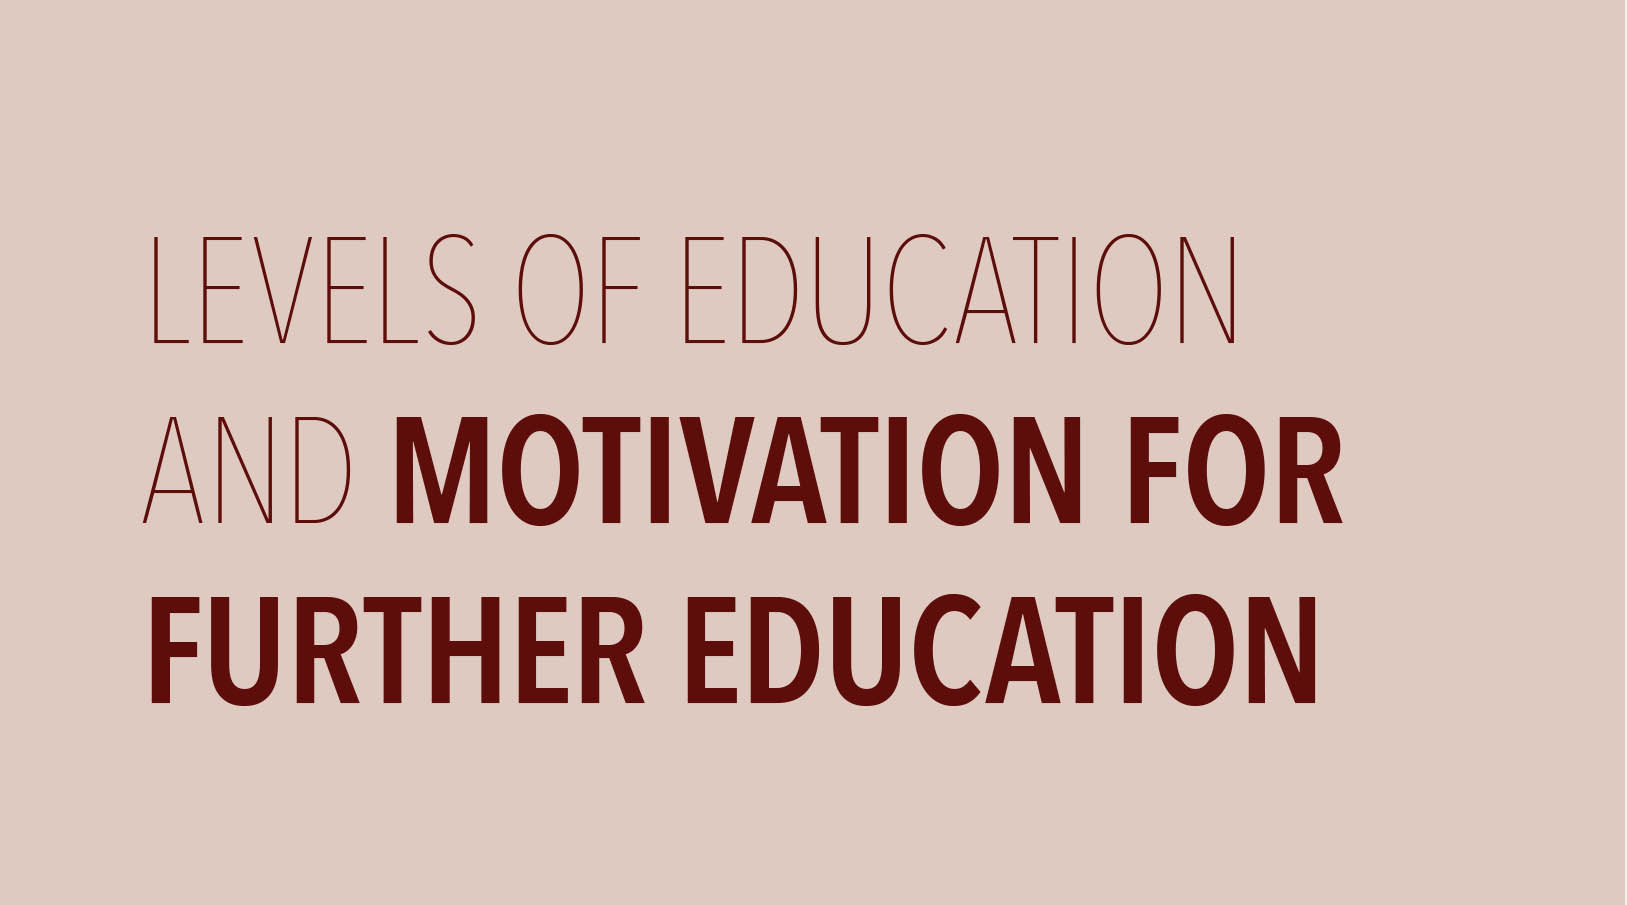 Levels of education and motivation for further education